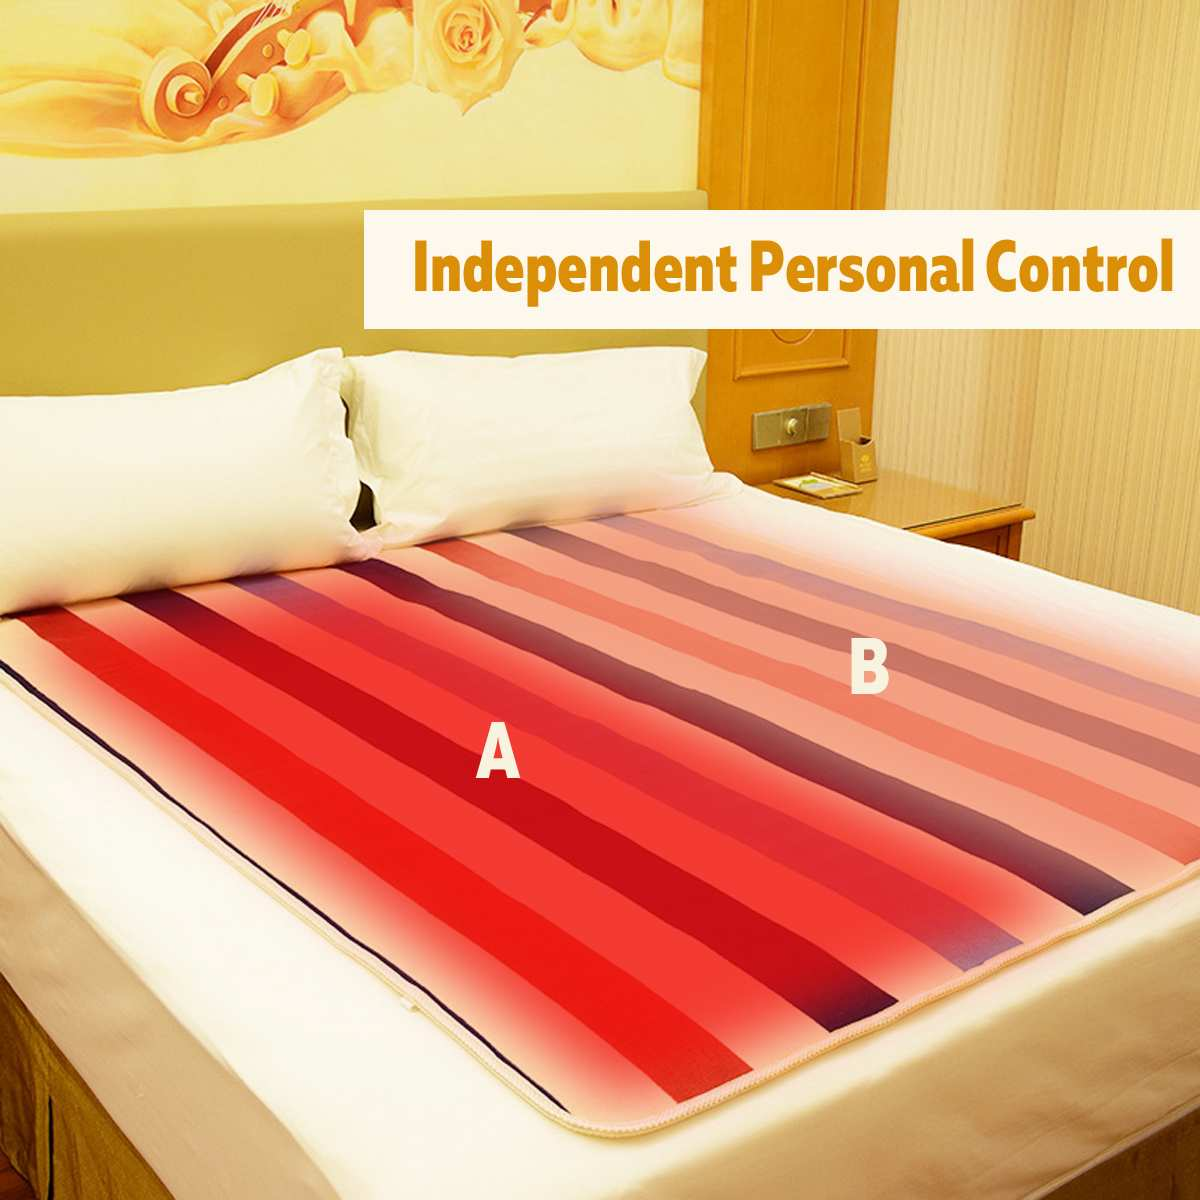 220V Automatic Electric Heating Thermostat Throw Blanket Double Body Warmer Bed Mattress Electric Heated Carpets Mat